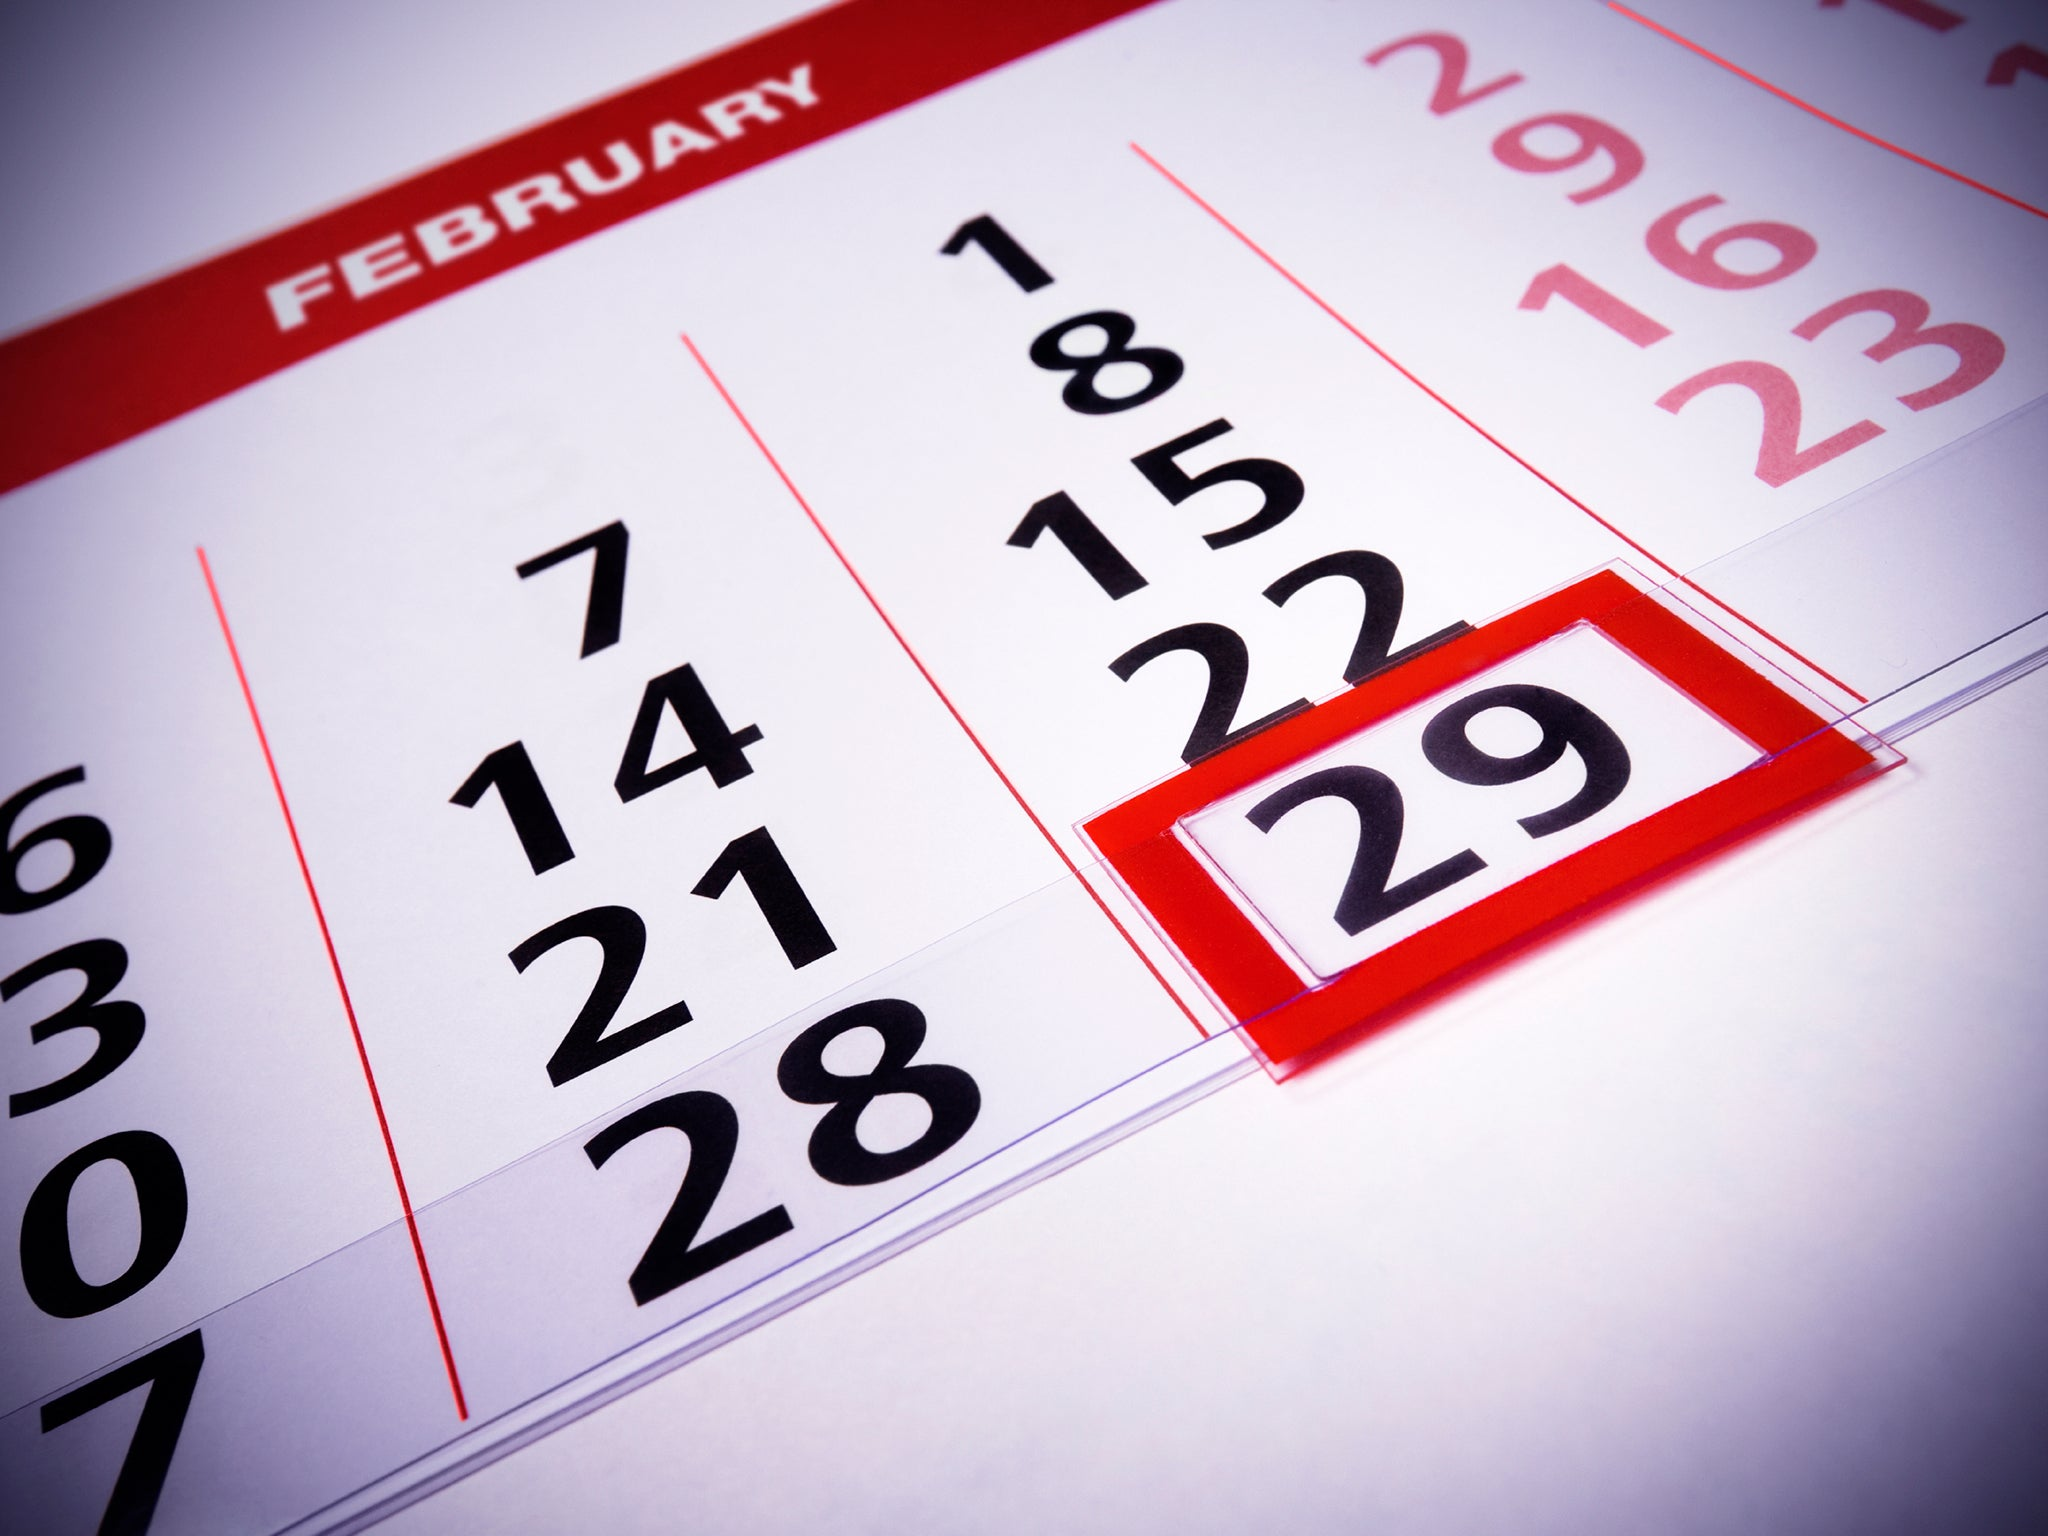 Leap year: What are they and why do we have leap days?